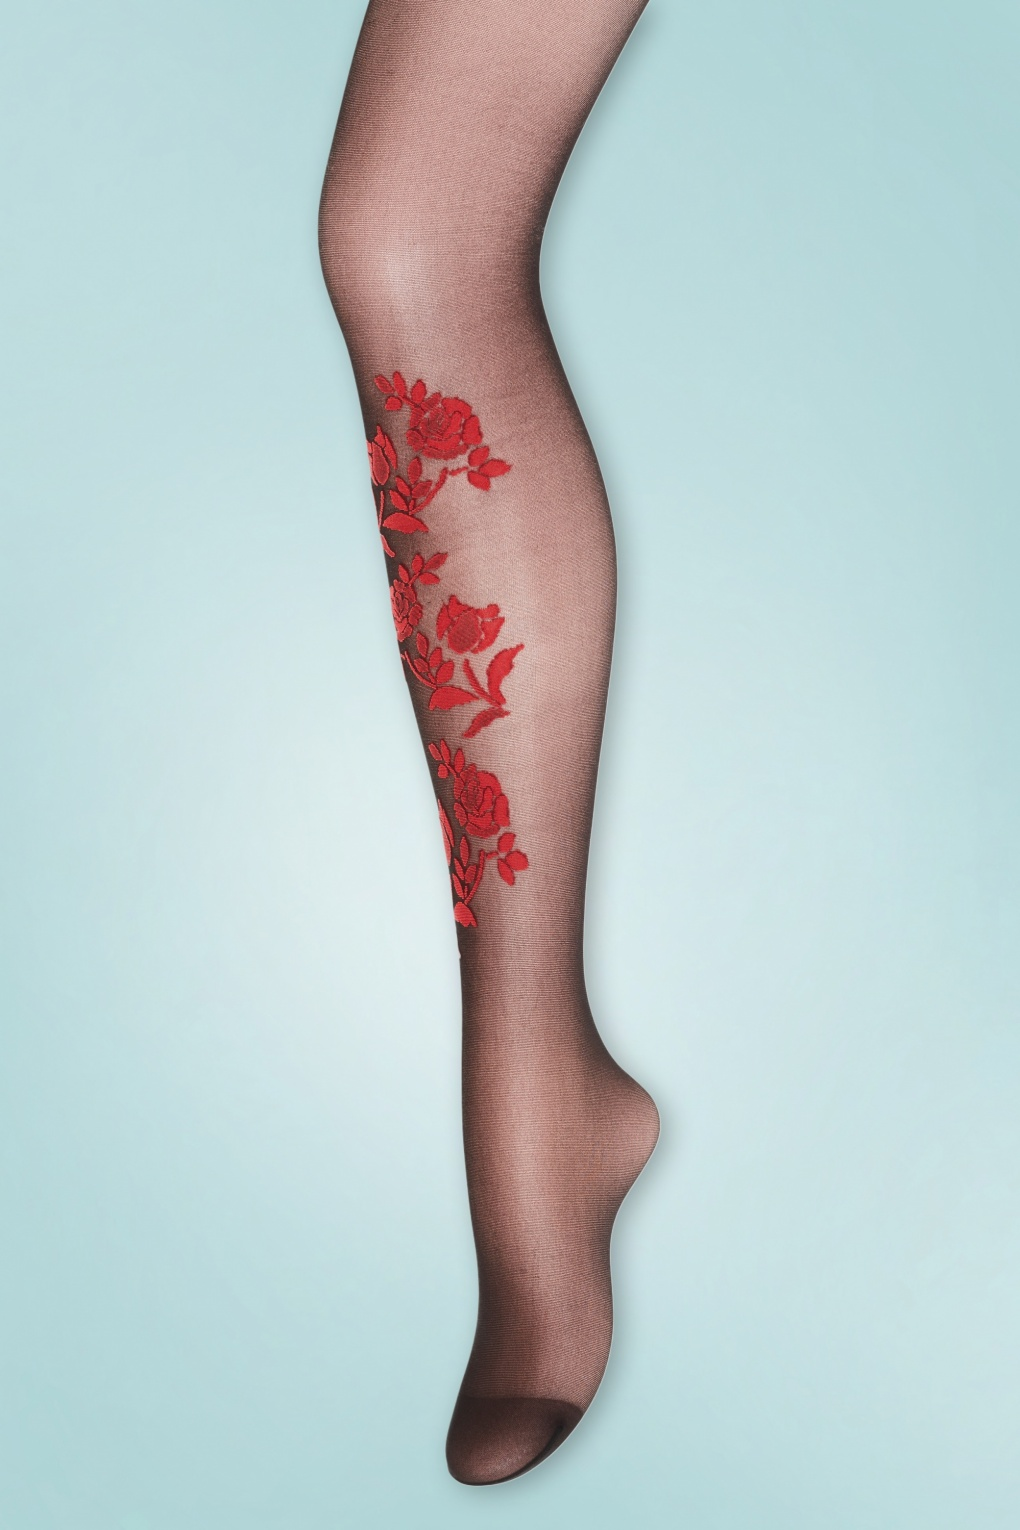 1950s Stockings and Nylons History & Shopping Guide 50s Mette Red Roses Tights in Black £21.83 AT vintagedancer.com